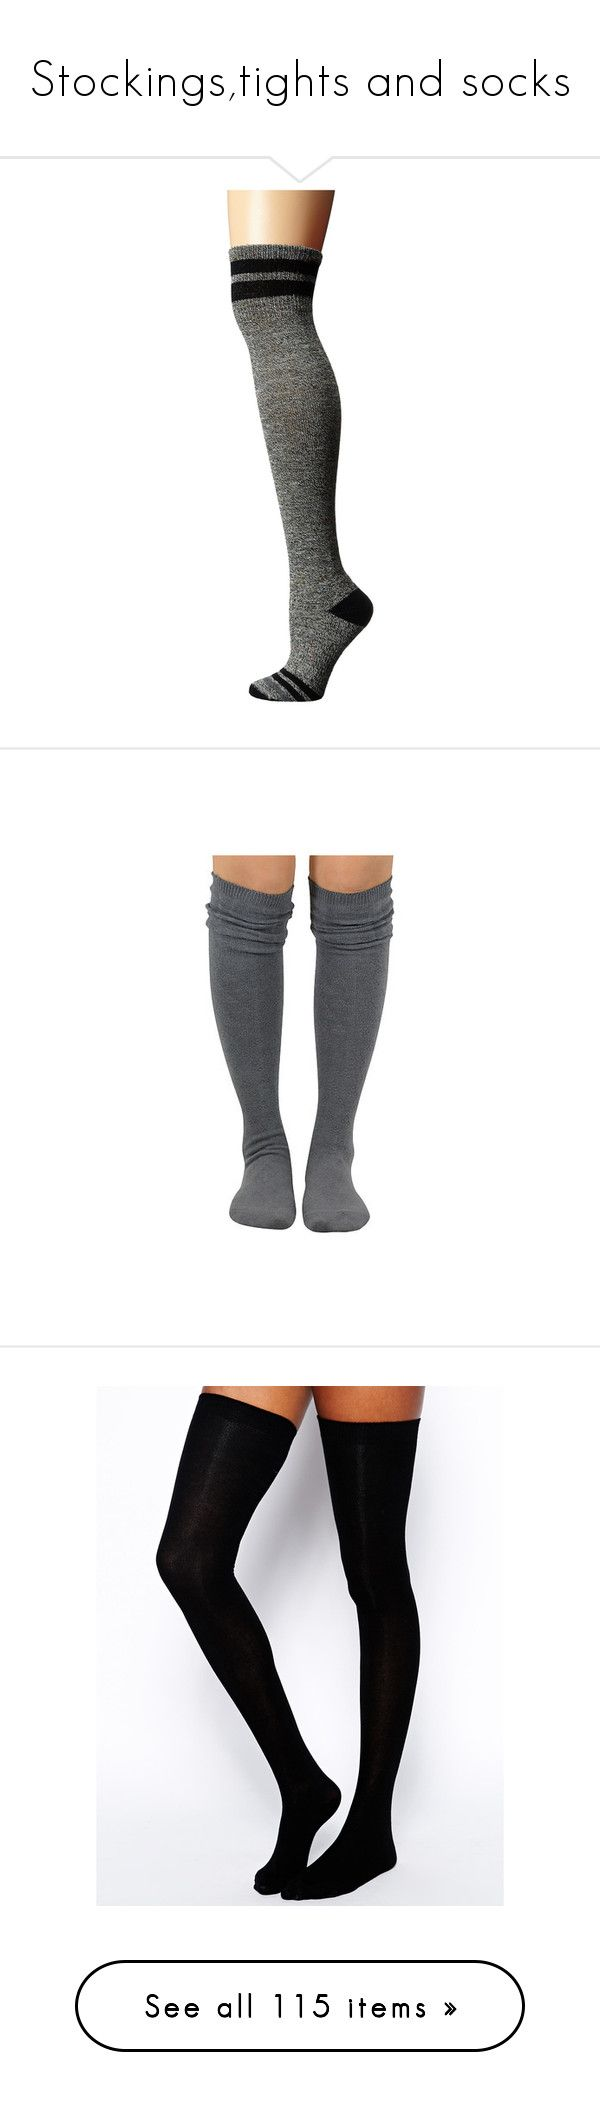 Fashion look from june 2014 featuring thigh high hosiery purple -  Stockings Tights And Socks By W Illusion Liked On Polyvore Featuring Intimates Hosiery Socks Thigh High Knee Socks Knee Socks Tube Socks